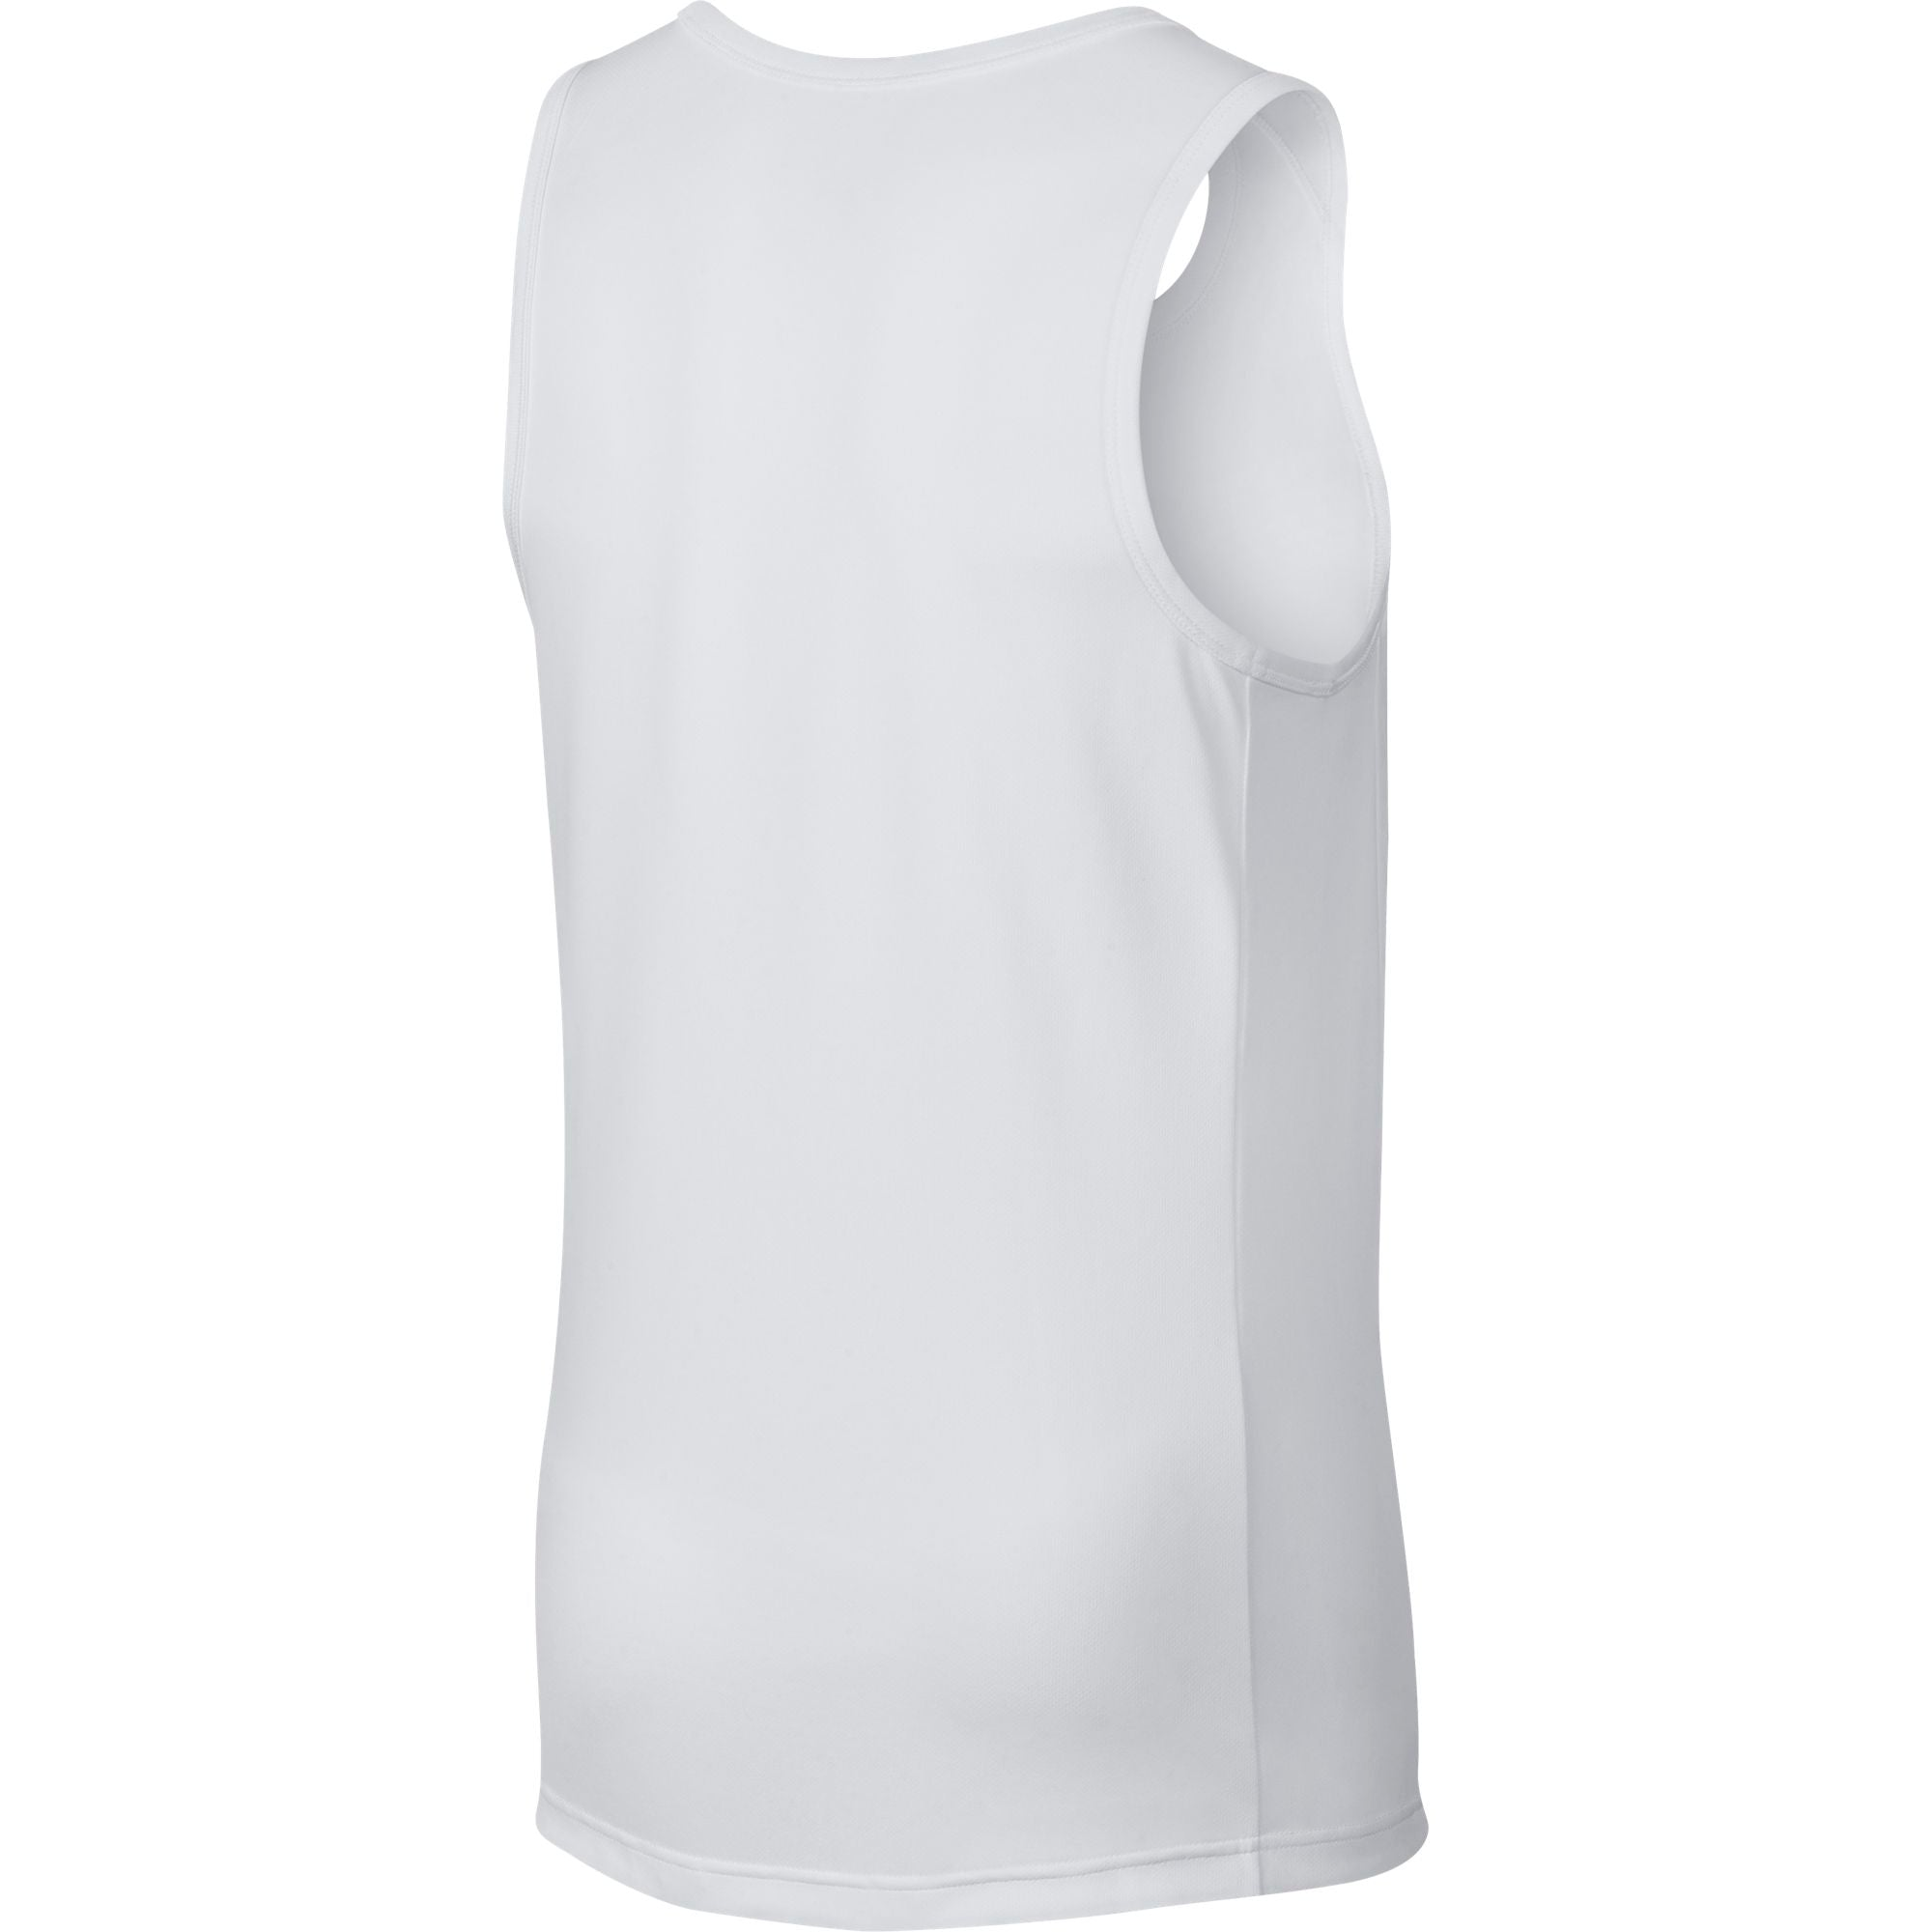 Nike Basketball Dry Fit Drop-Tail Top - White/Black